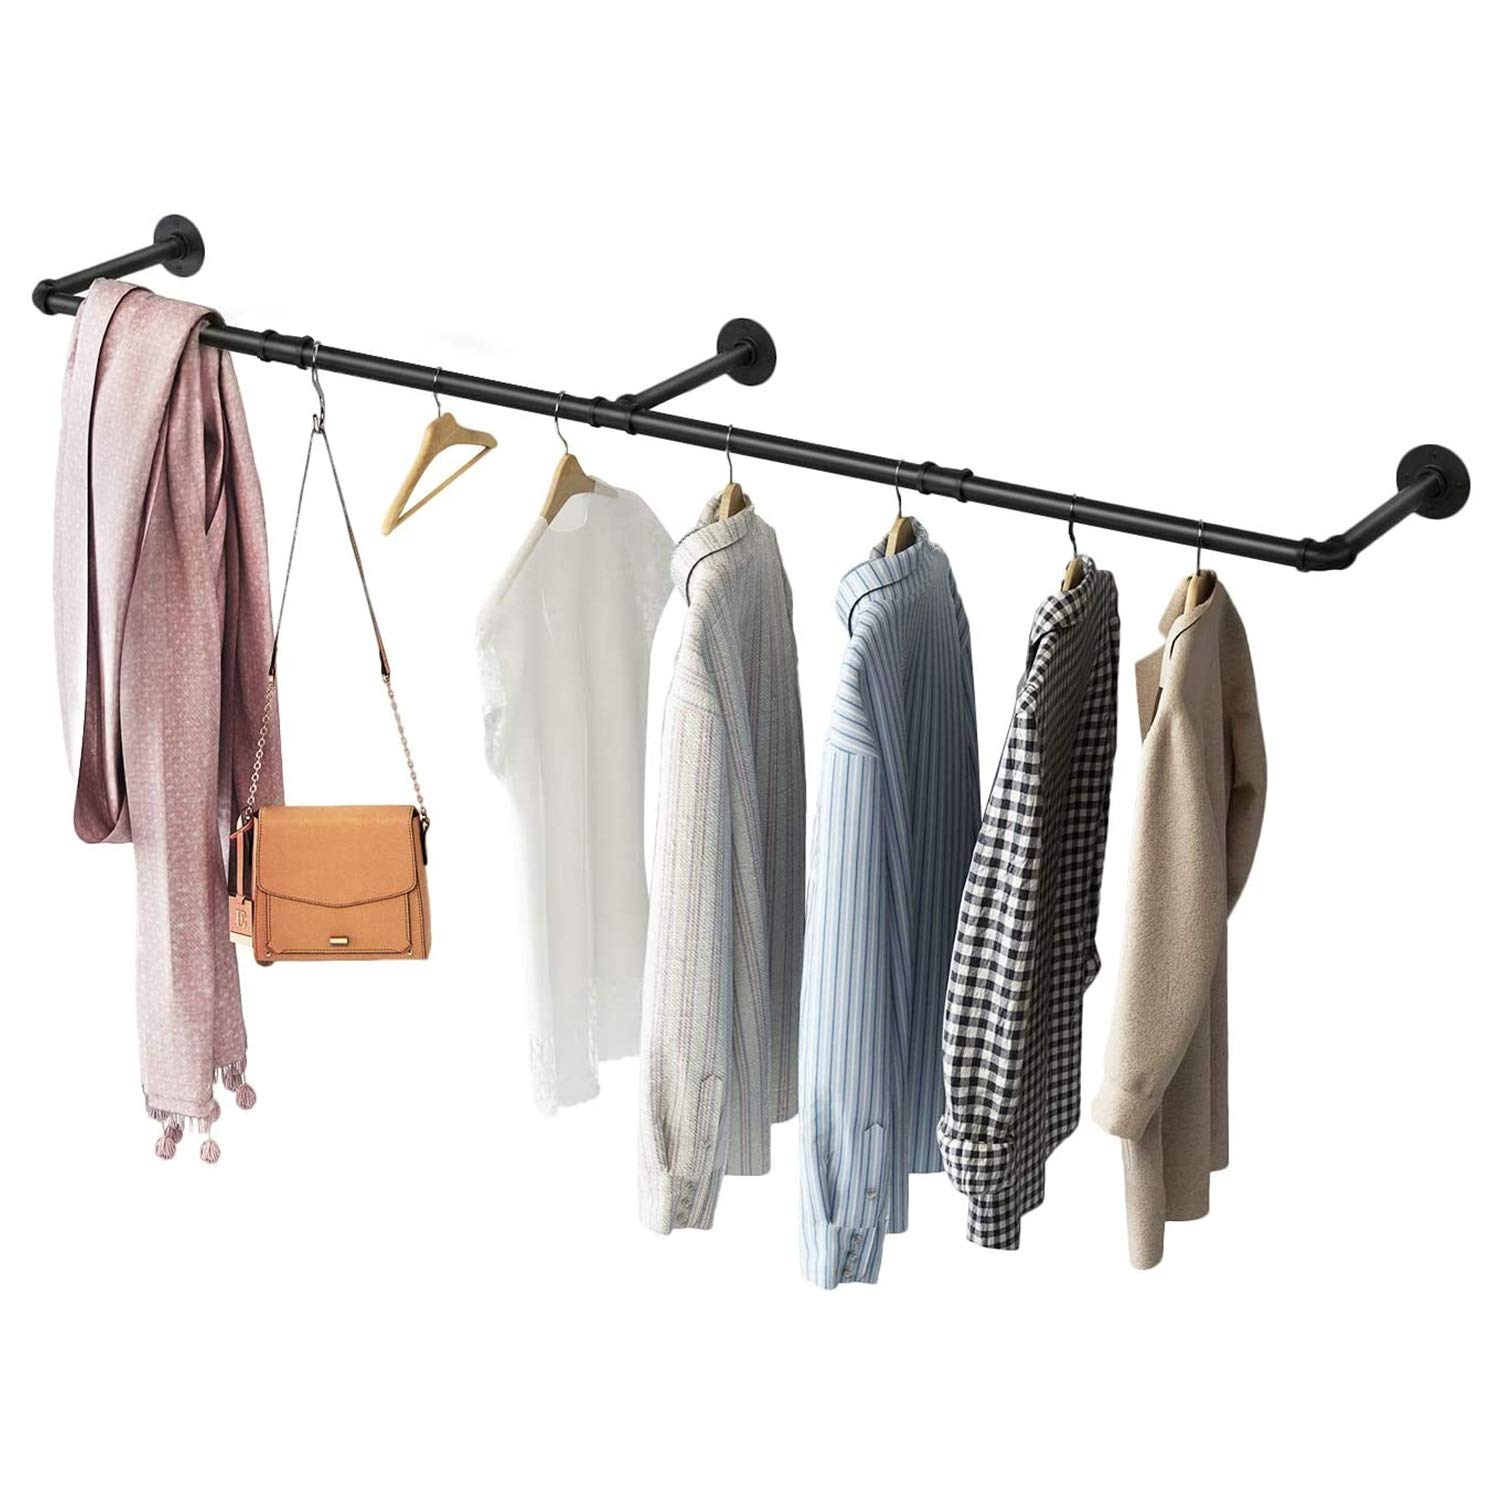 Greenstell Clothes Rack, Industrial Pipe Wall Mounted Garment Rack 67 in, Space-Saving Heavy Duty Hanging Clothes Rack, Detachable Garment Bar, Multi-Purpose Hanging Rod for Closet Storage 3 Base